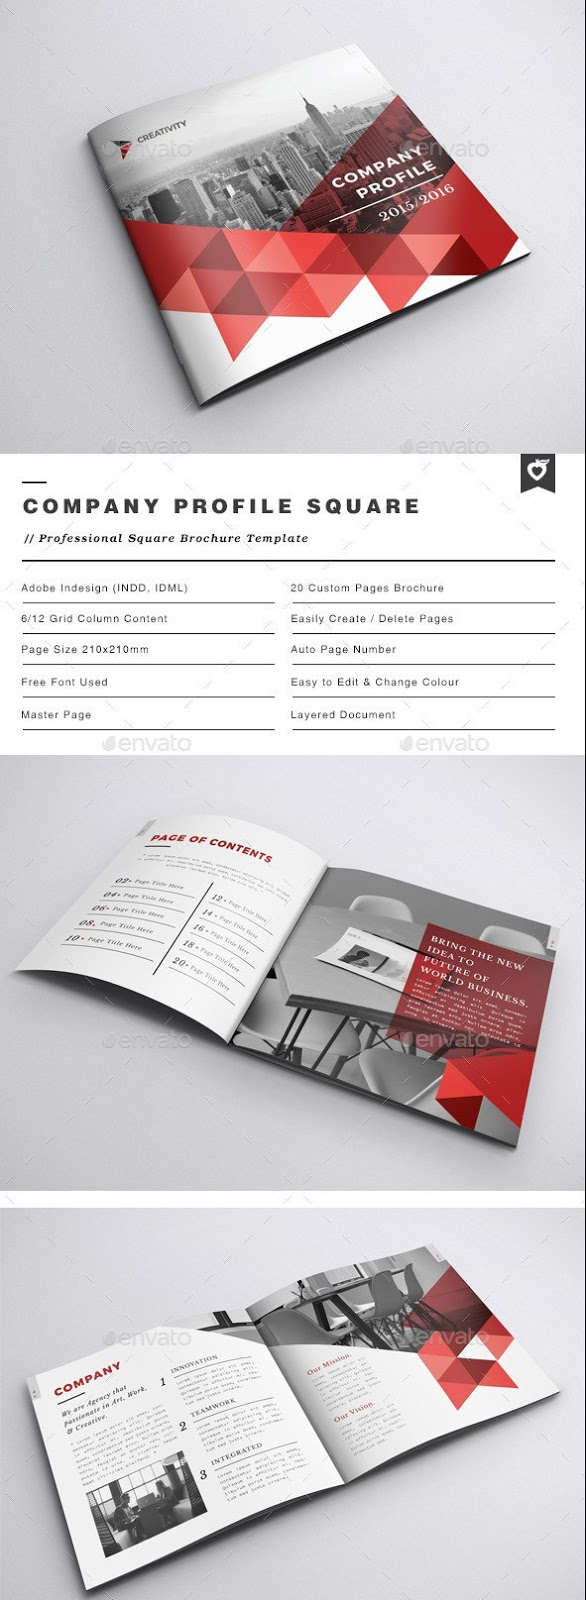 indesign template free brochure - 100 free premium brochure templates photoshop psd